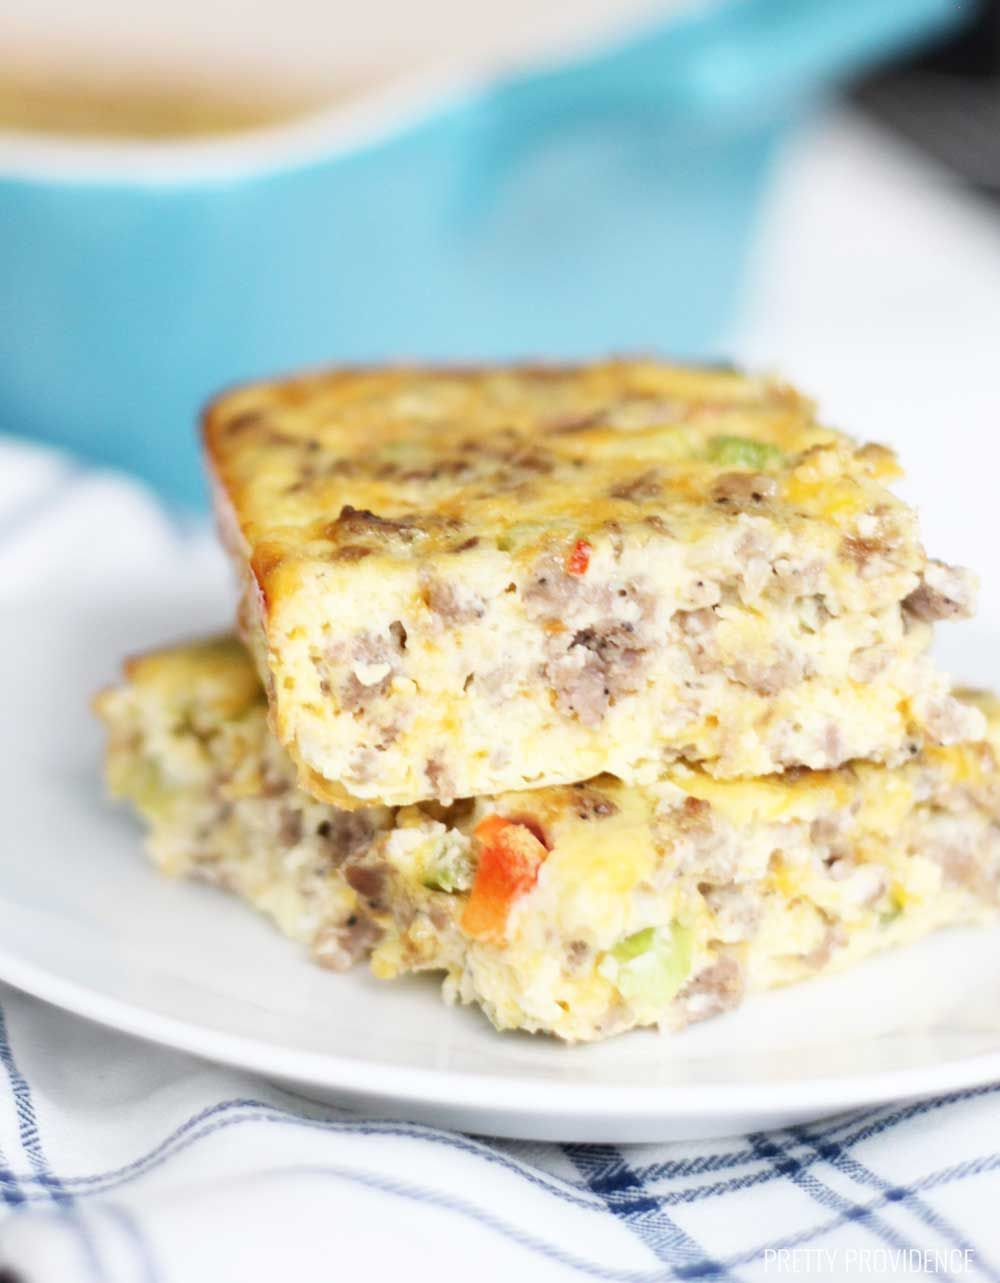 This is literally the best breakfast casserole recipe ever! It's super easy to make, and is full of eggs, sausage, cheese and everything good!